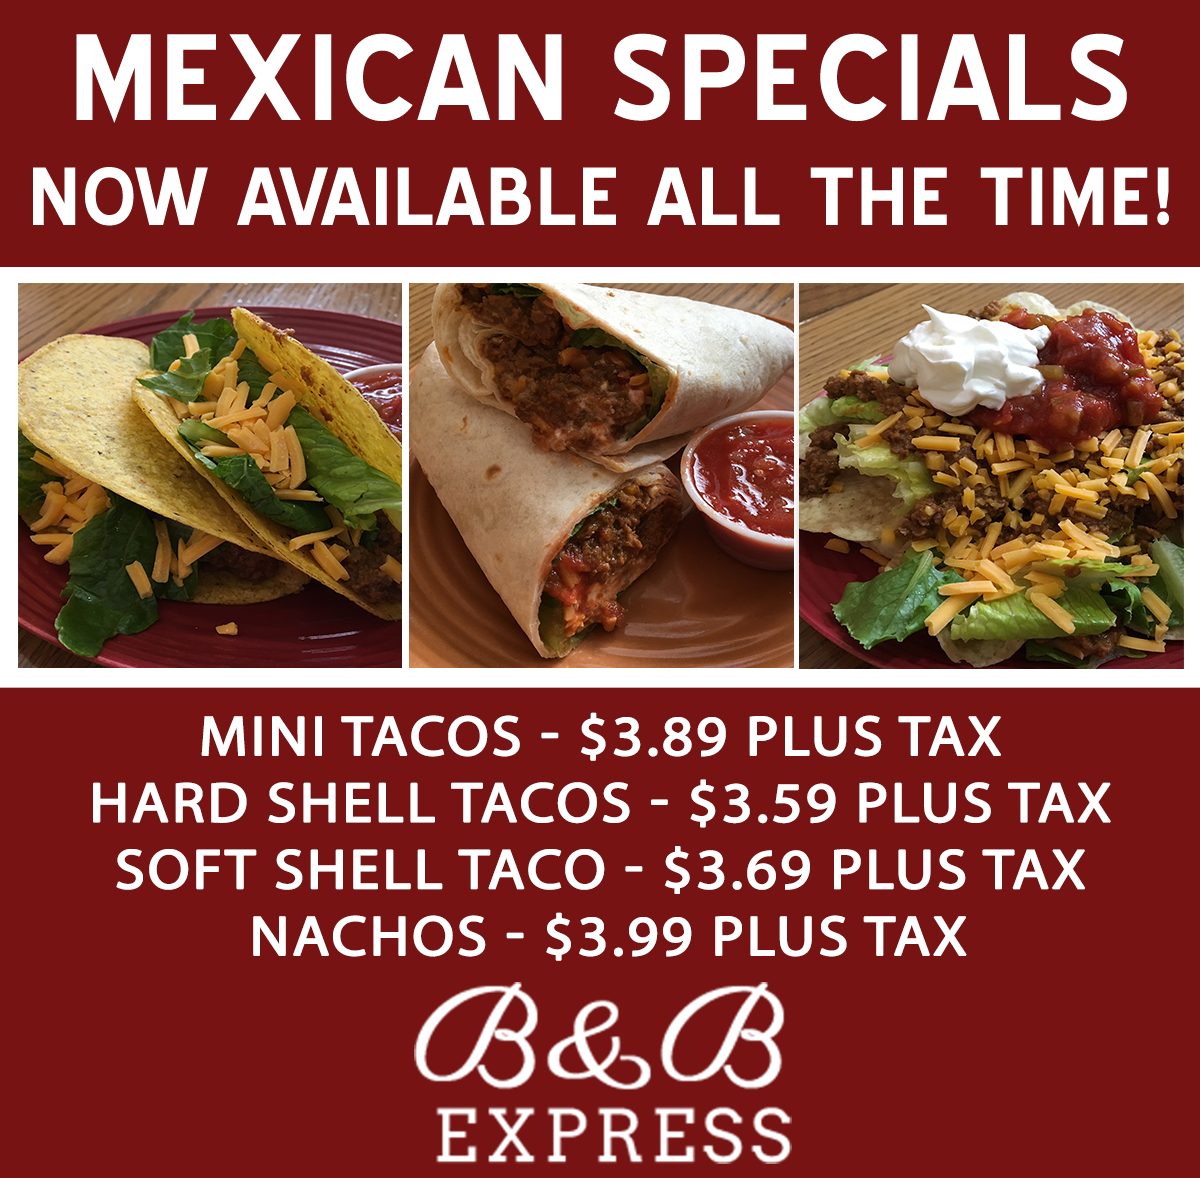 Mexican Specials Now available all the time!  Mini tacos - $3.89 plus tax Hard Shell Tacos - $3.59 plus tax soft shell taco - $3.69 plus tax nachos- $3.99 plus tax B&B Express